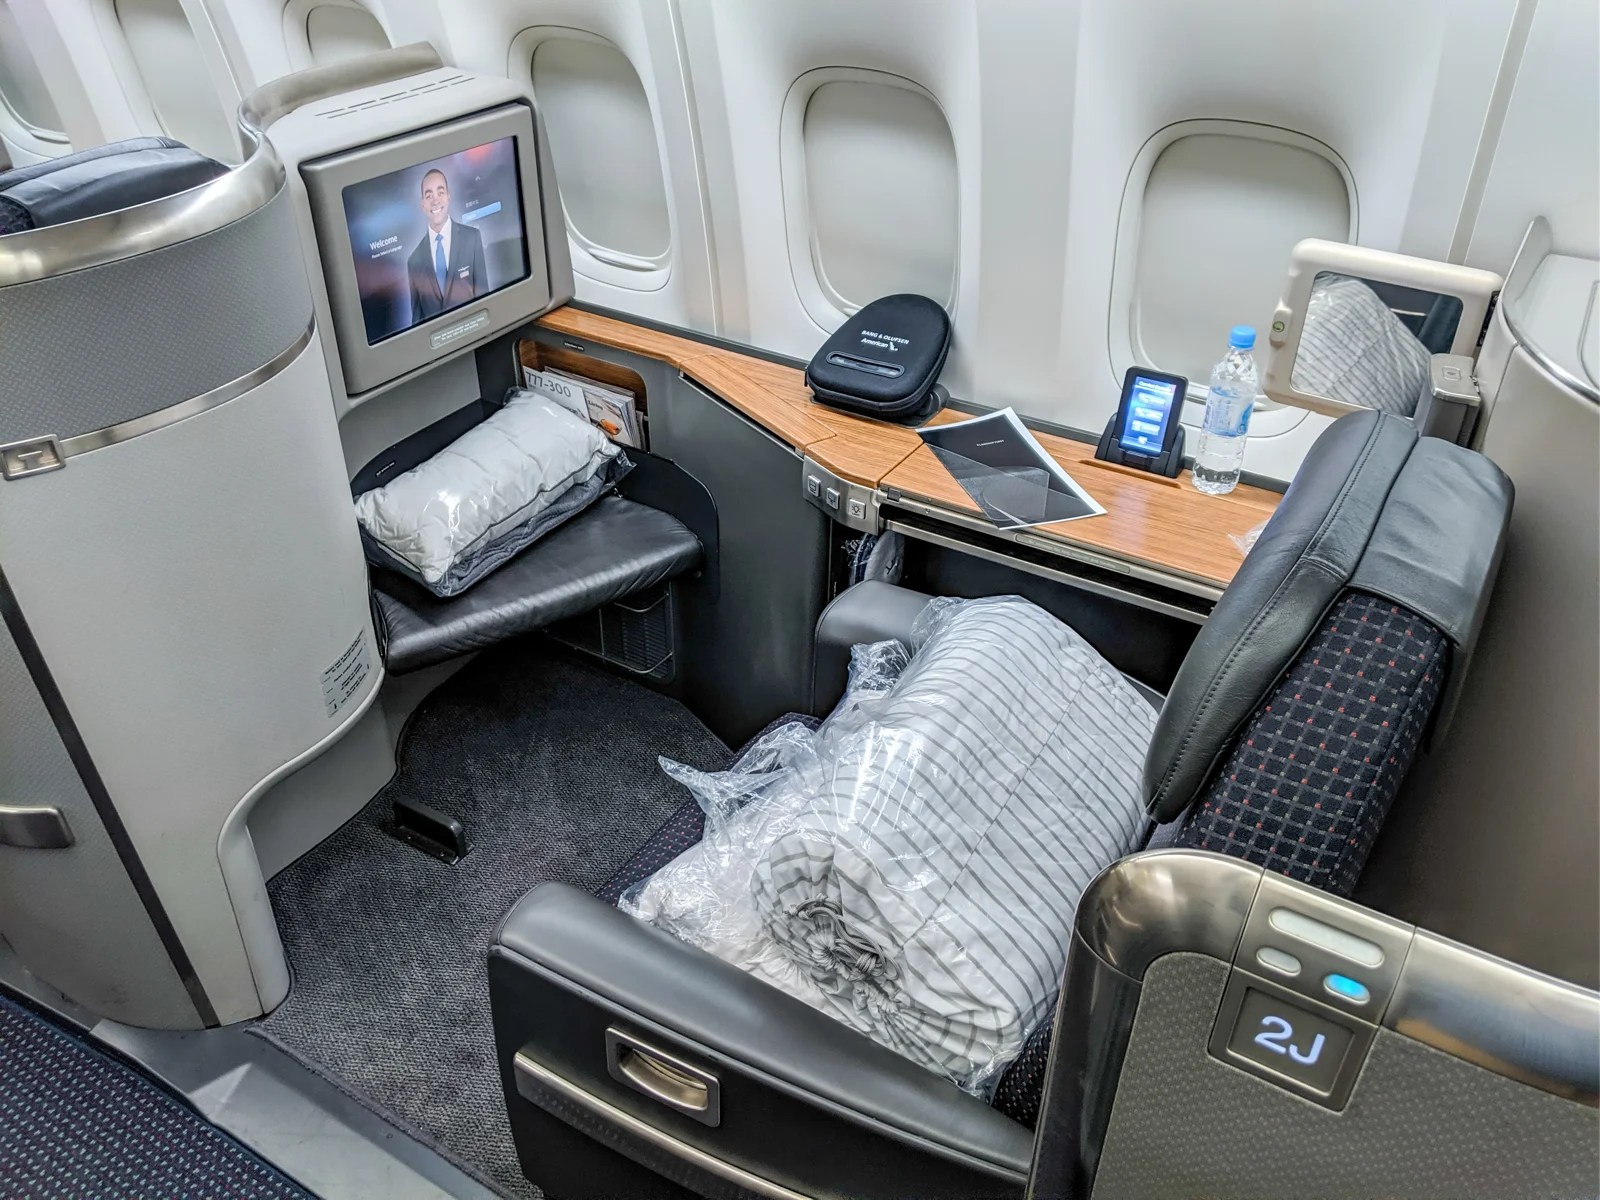 Don't lose your perks: Here's your American Airlines year-end checklist